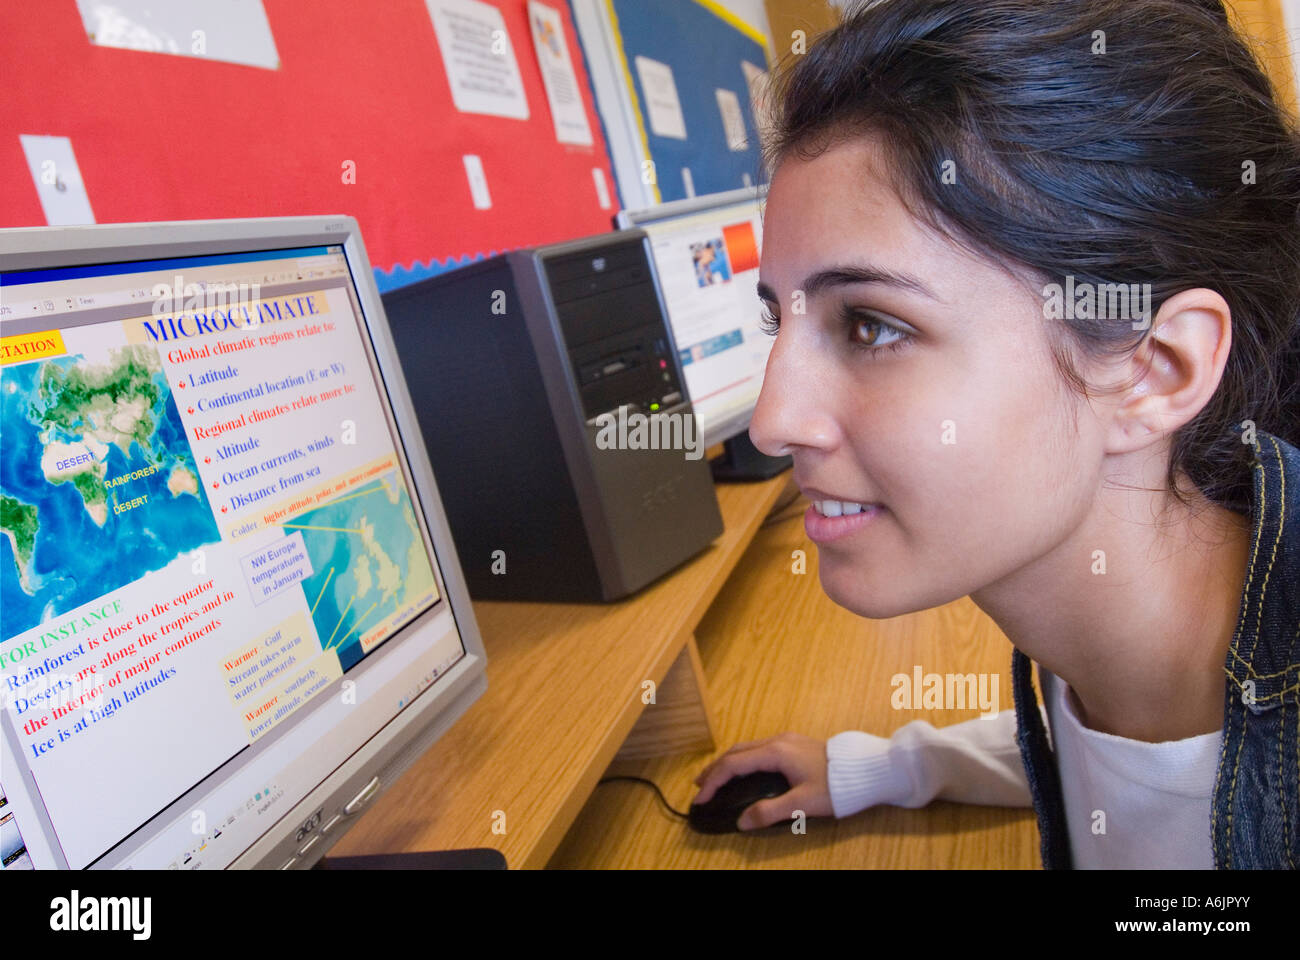 CLIMATE  CHANGE SCREEN STUDY SCHOOL asian teenage girl student working at her screen studying global weather climate issues in  computer classroom Stock Photo